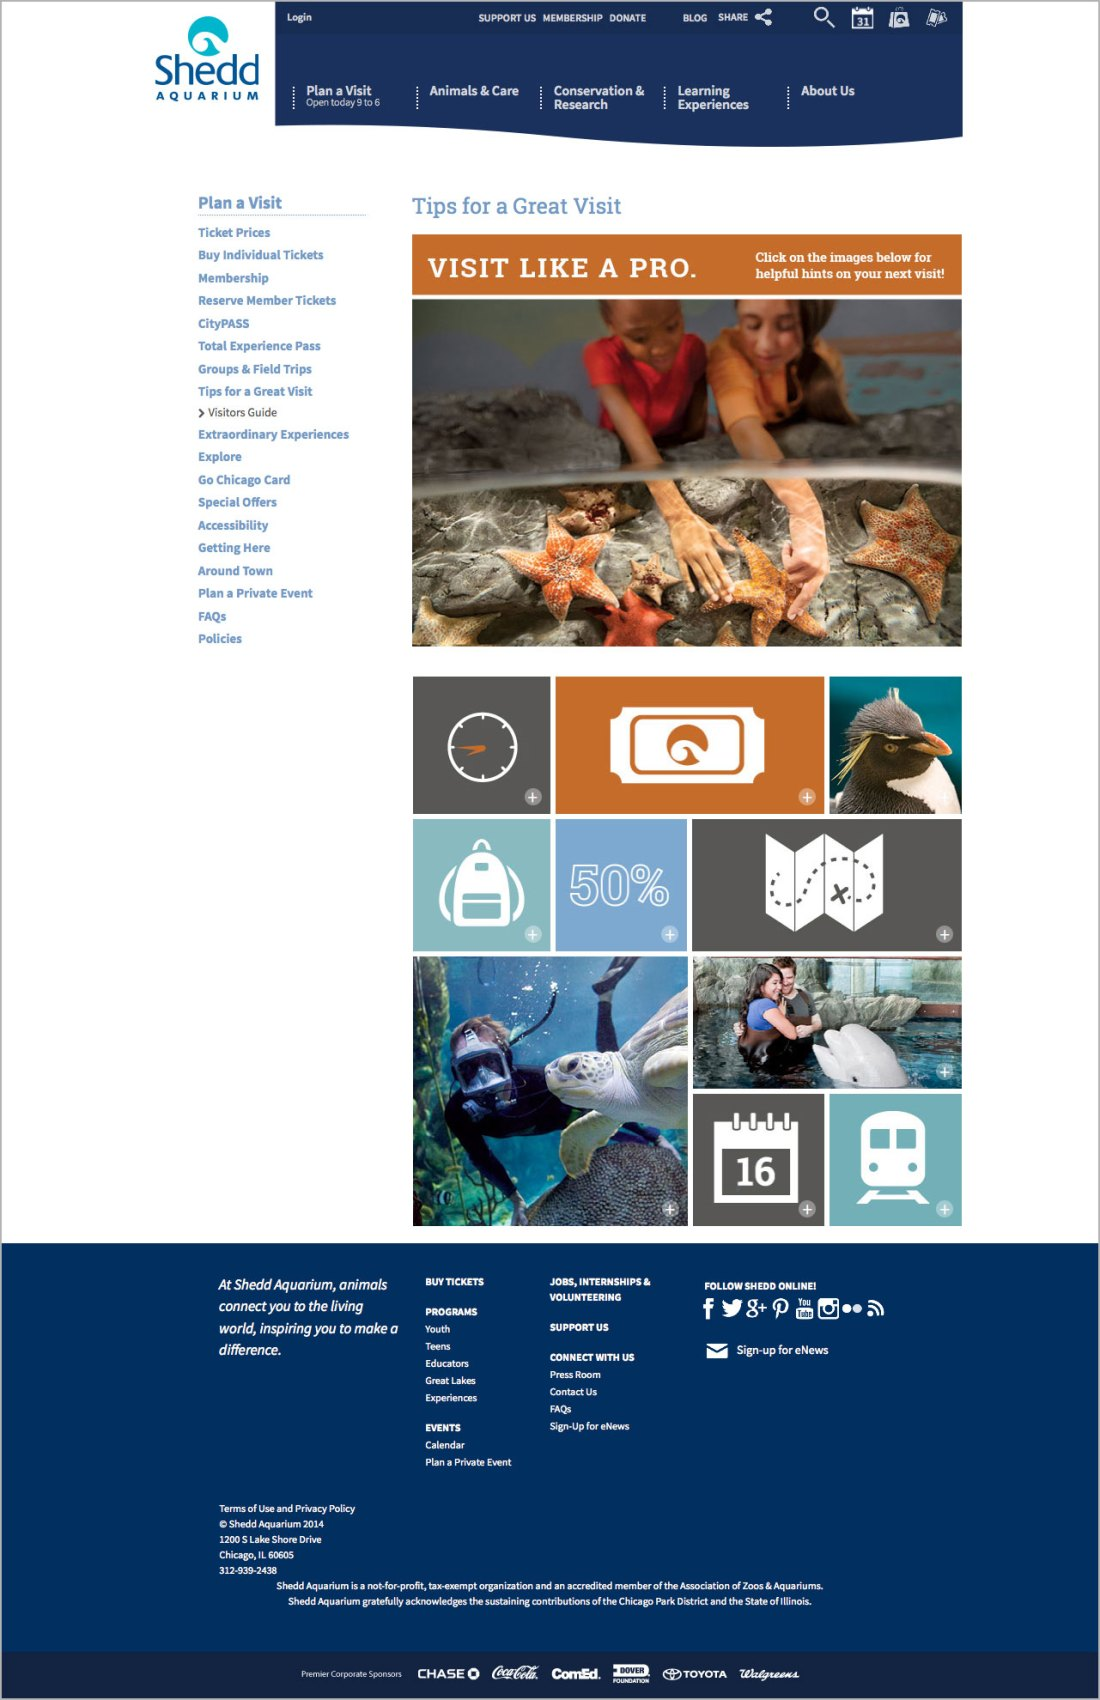 A screenshot of a webpage, featuring a top navigation, side navigation, and footer area. In the content area under the title, 'Tips for a Great Visit' is an infographic consisting of many square and rectangular cells pieced together to form a mosaic, under a large intro photo featuring two girls reaching into a seastar touch habitat. The icons in the mosaic area are placed on colorful, orange, teal and blue backgrounds and interspersed with photos of people and animals.